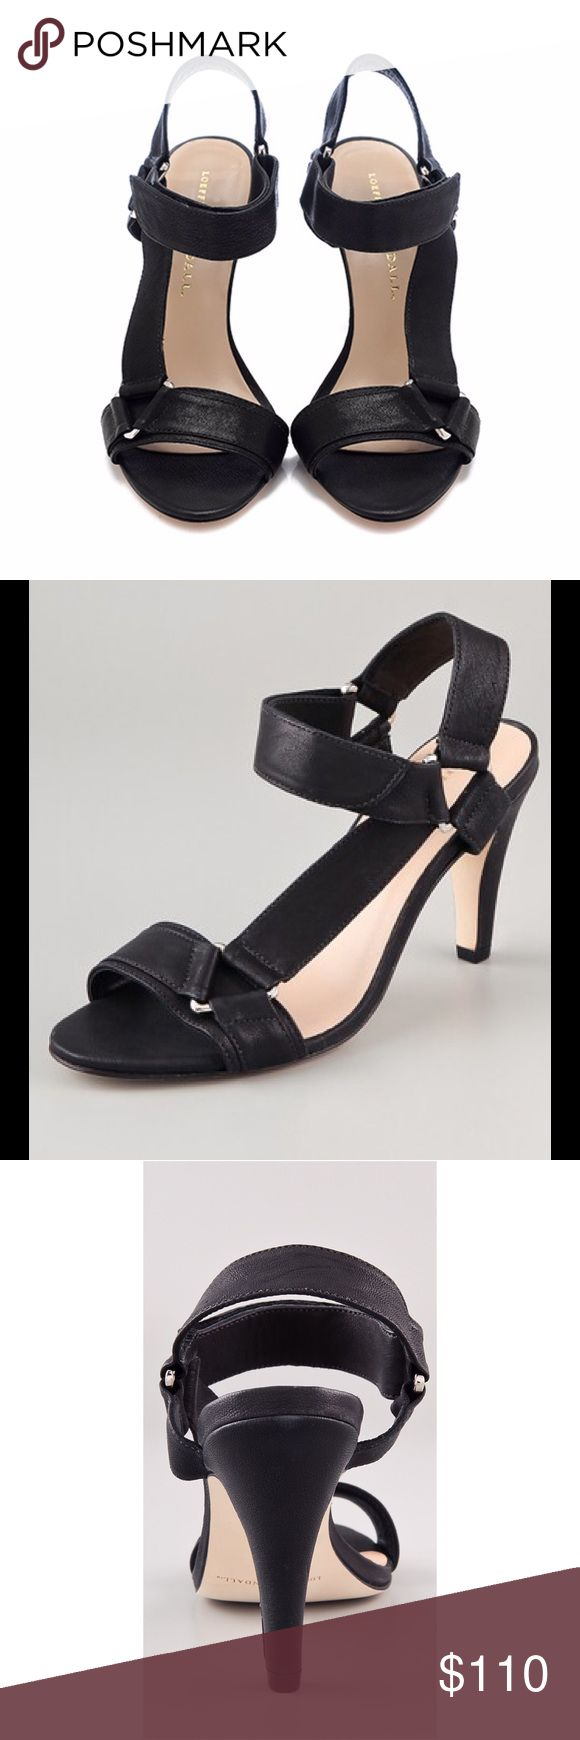 "Loeffler Randall Reba Mid Heel Sandals Loeffler Randall Reba Mid Heel Sandals.  Leather sandals featuring triangle hardware and a Velcro ankle strap.  Covered heel,  leather sole.  3.5"" heel.  Made in Brazil.  Great condition! Loeffler Randall Shoes Sandals"